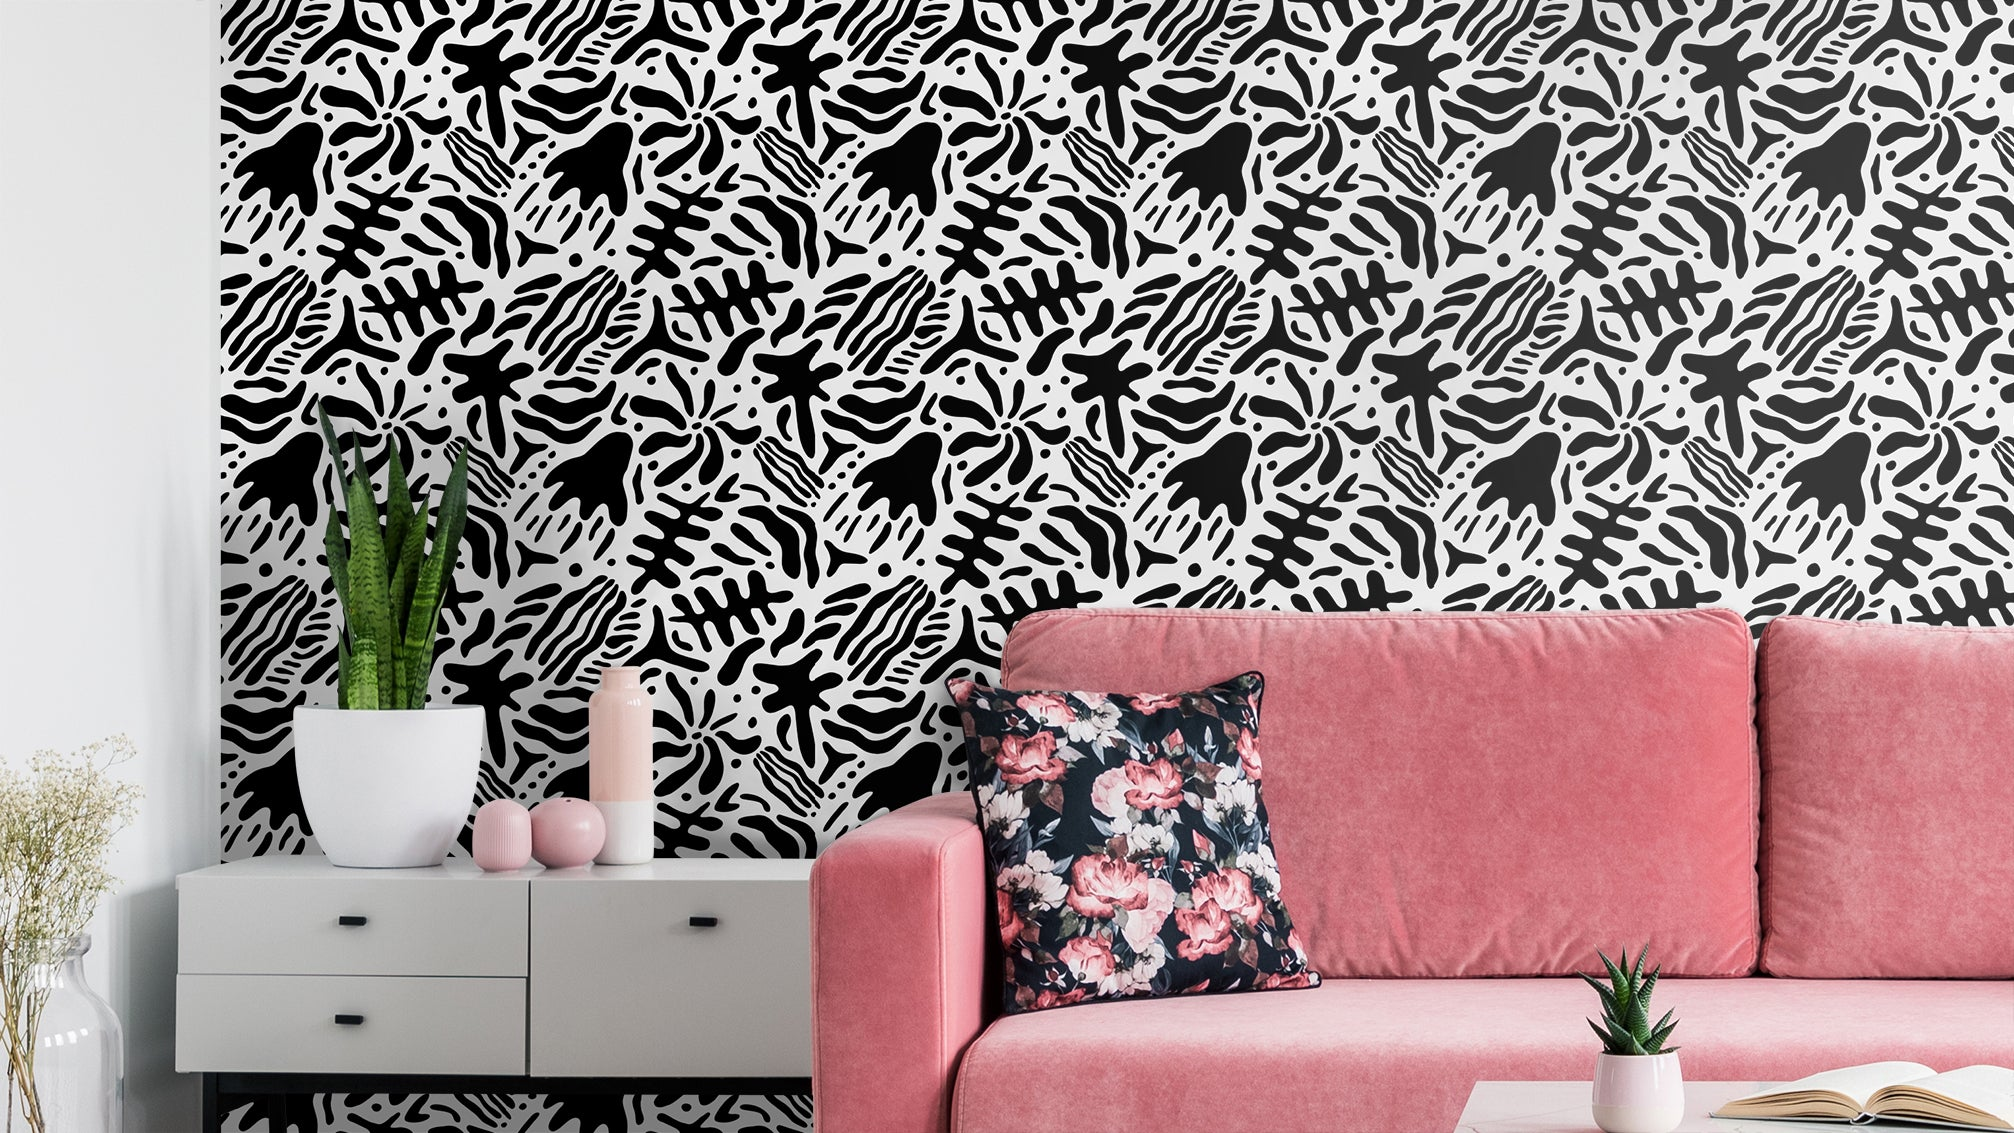 Abstract black and white removable wallpaper behind pink couch and white side table with plants